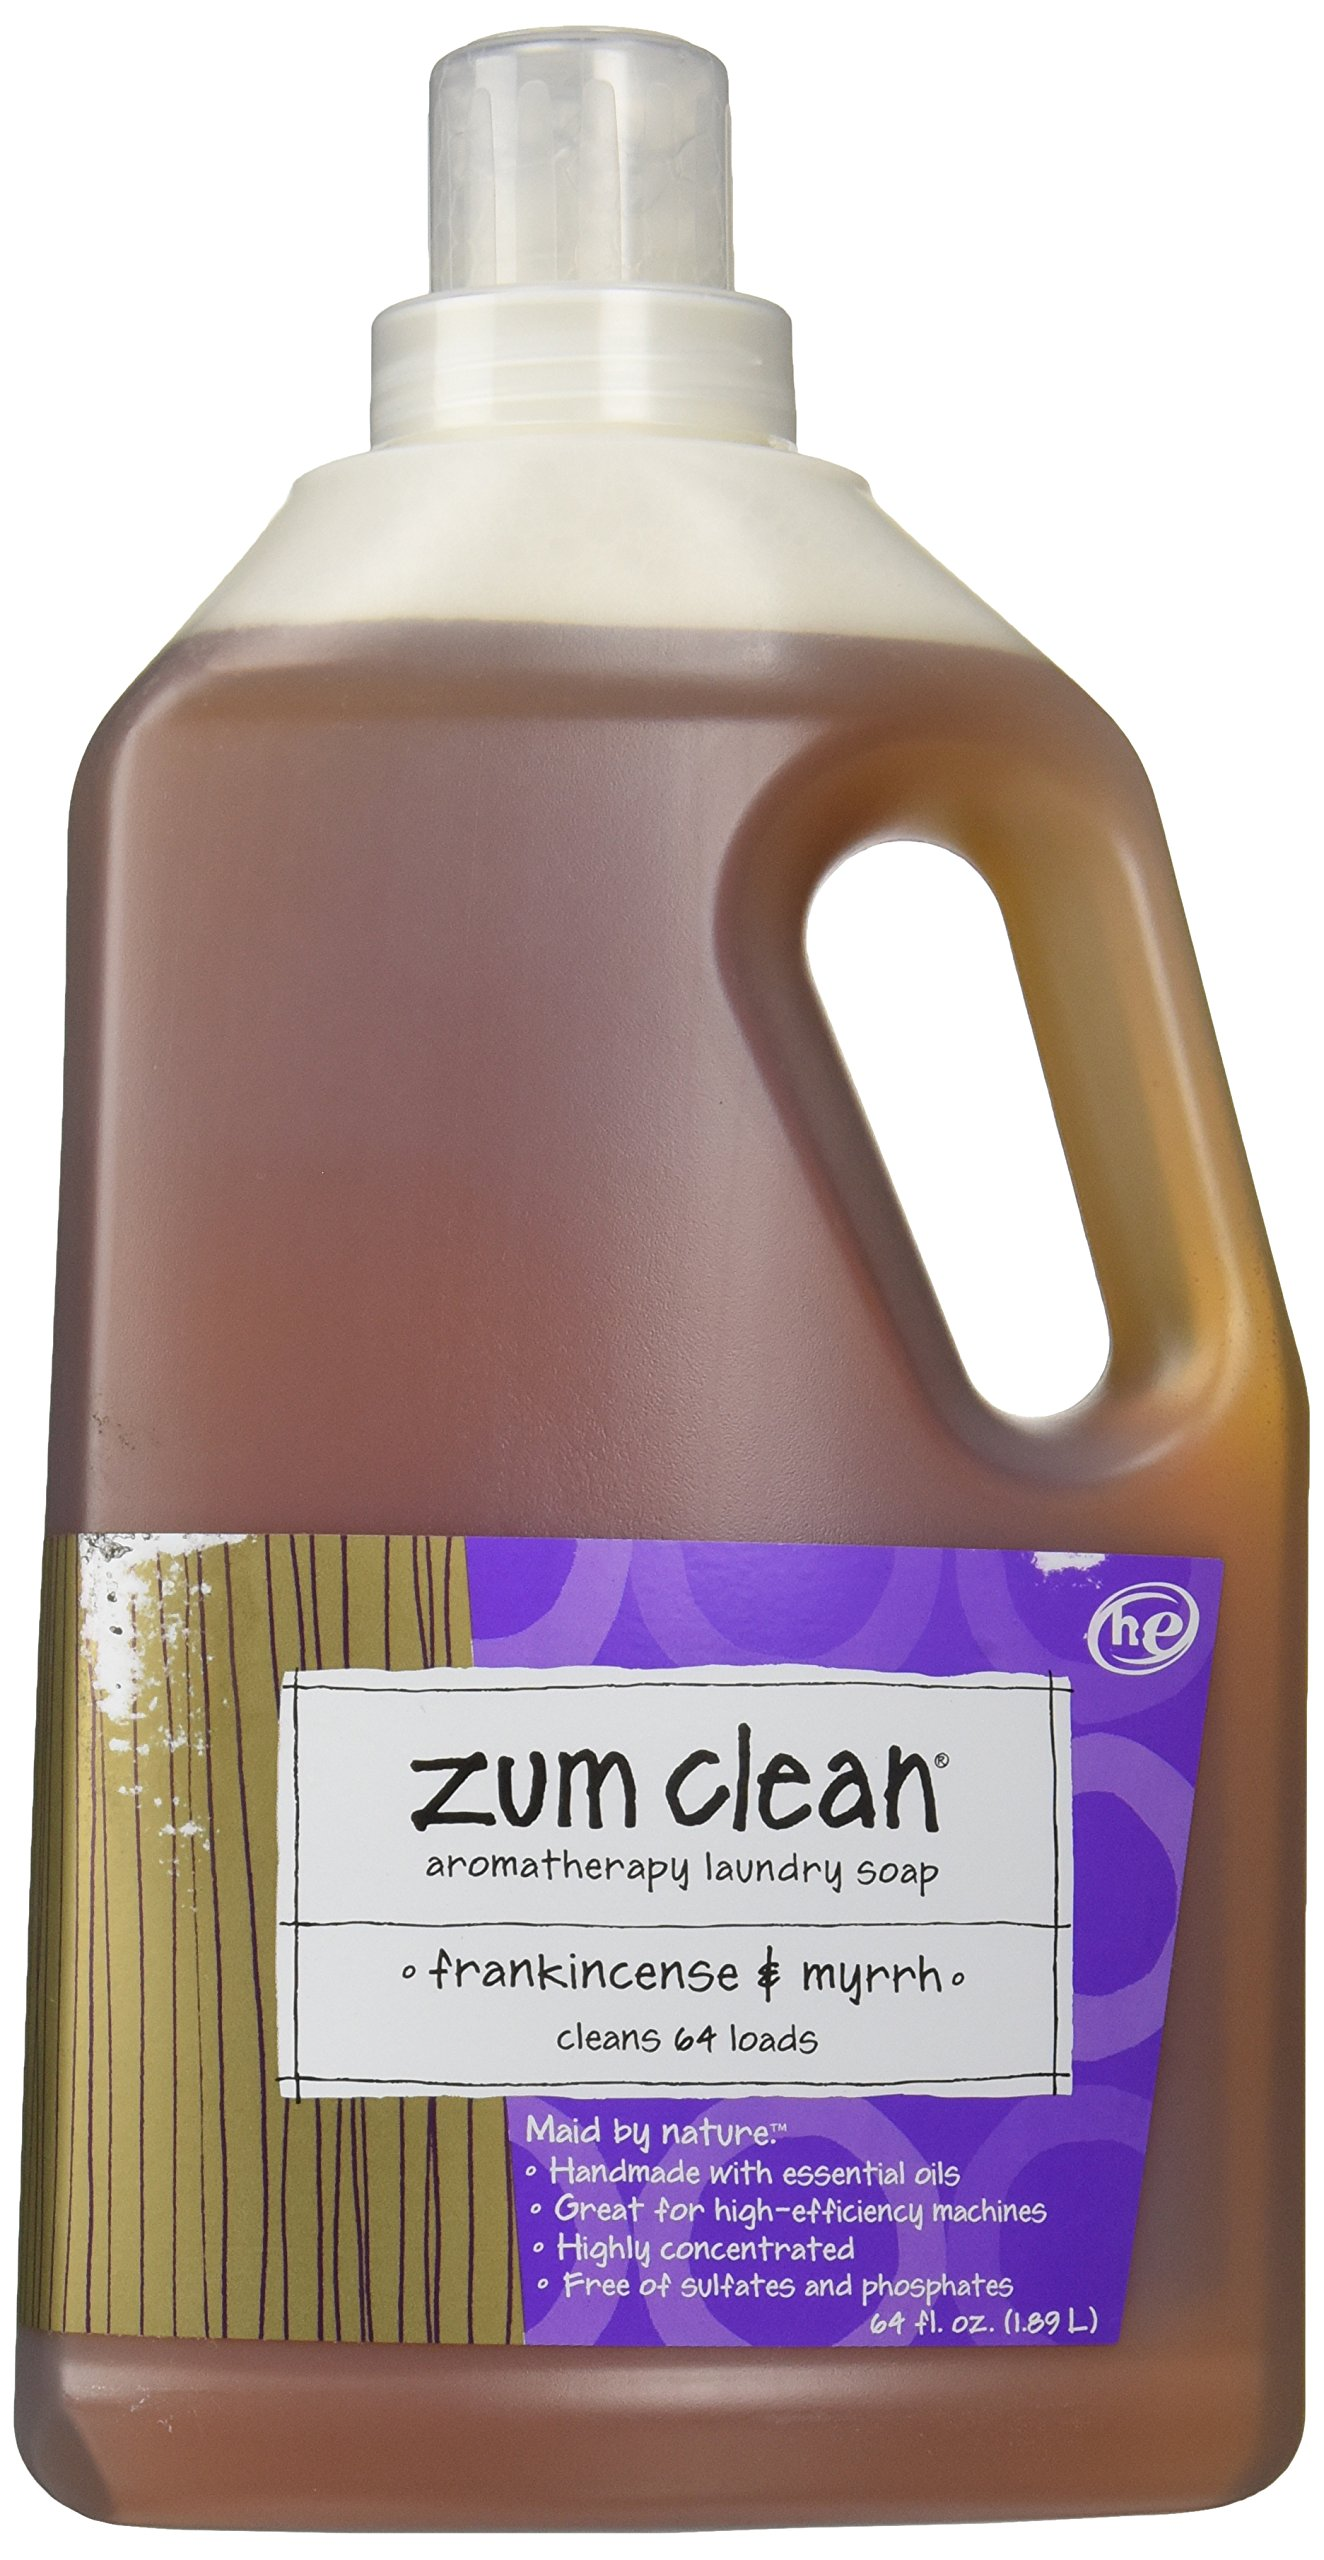 Indigo Wild Zum Clean Laundry Soap Frankincense Myrrh,64 fl oz by ZUM